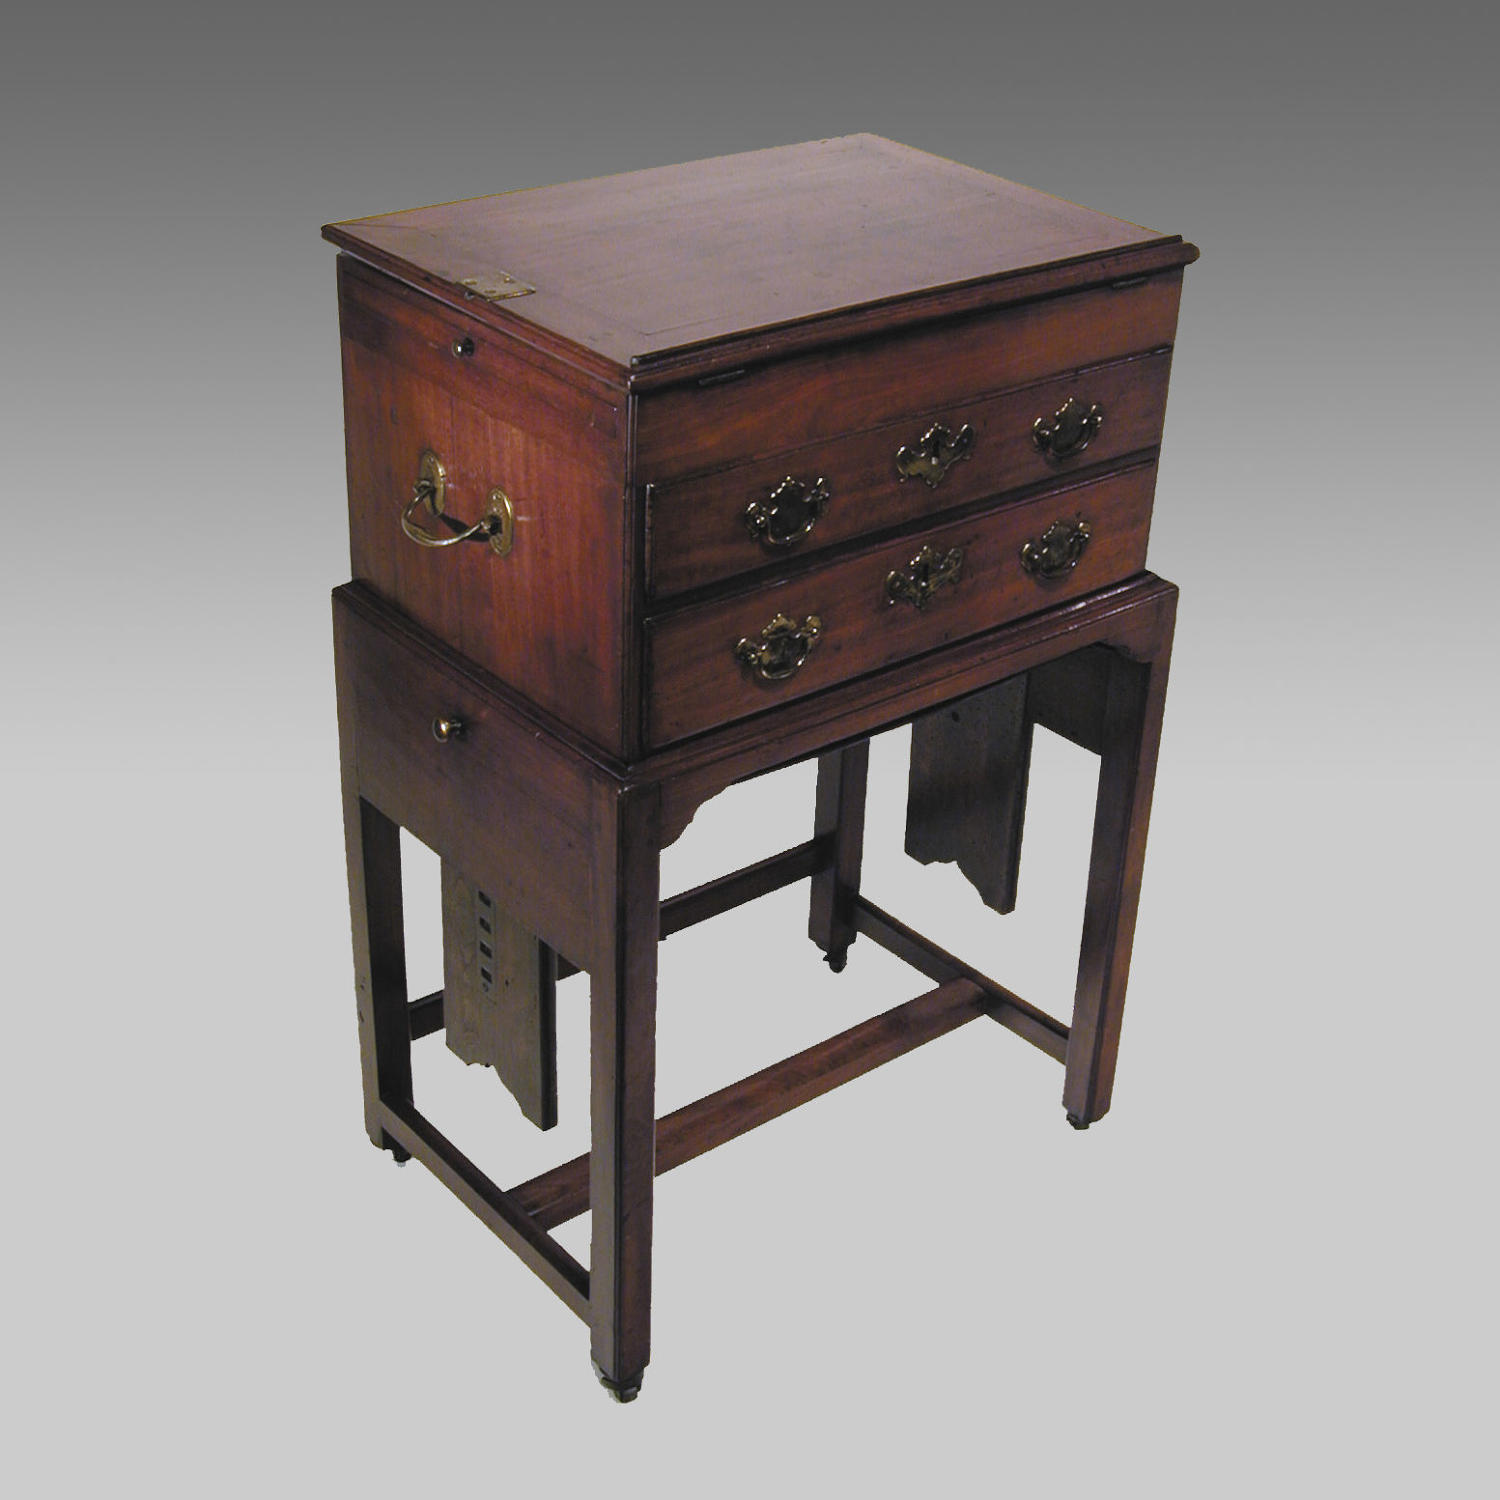 18th century mahogany artist's or architect's desk